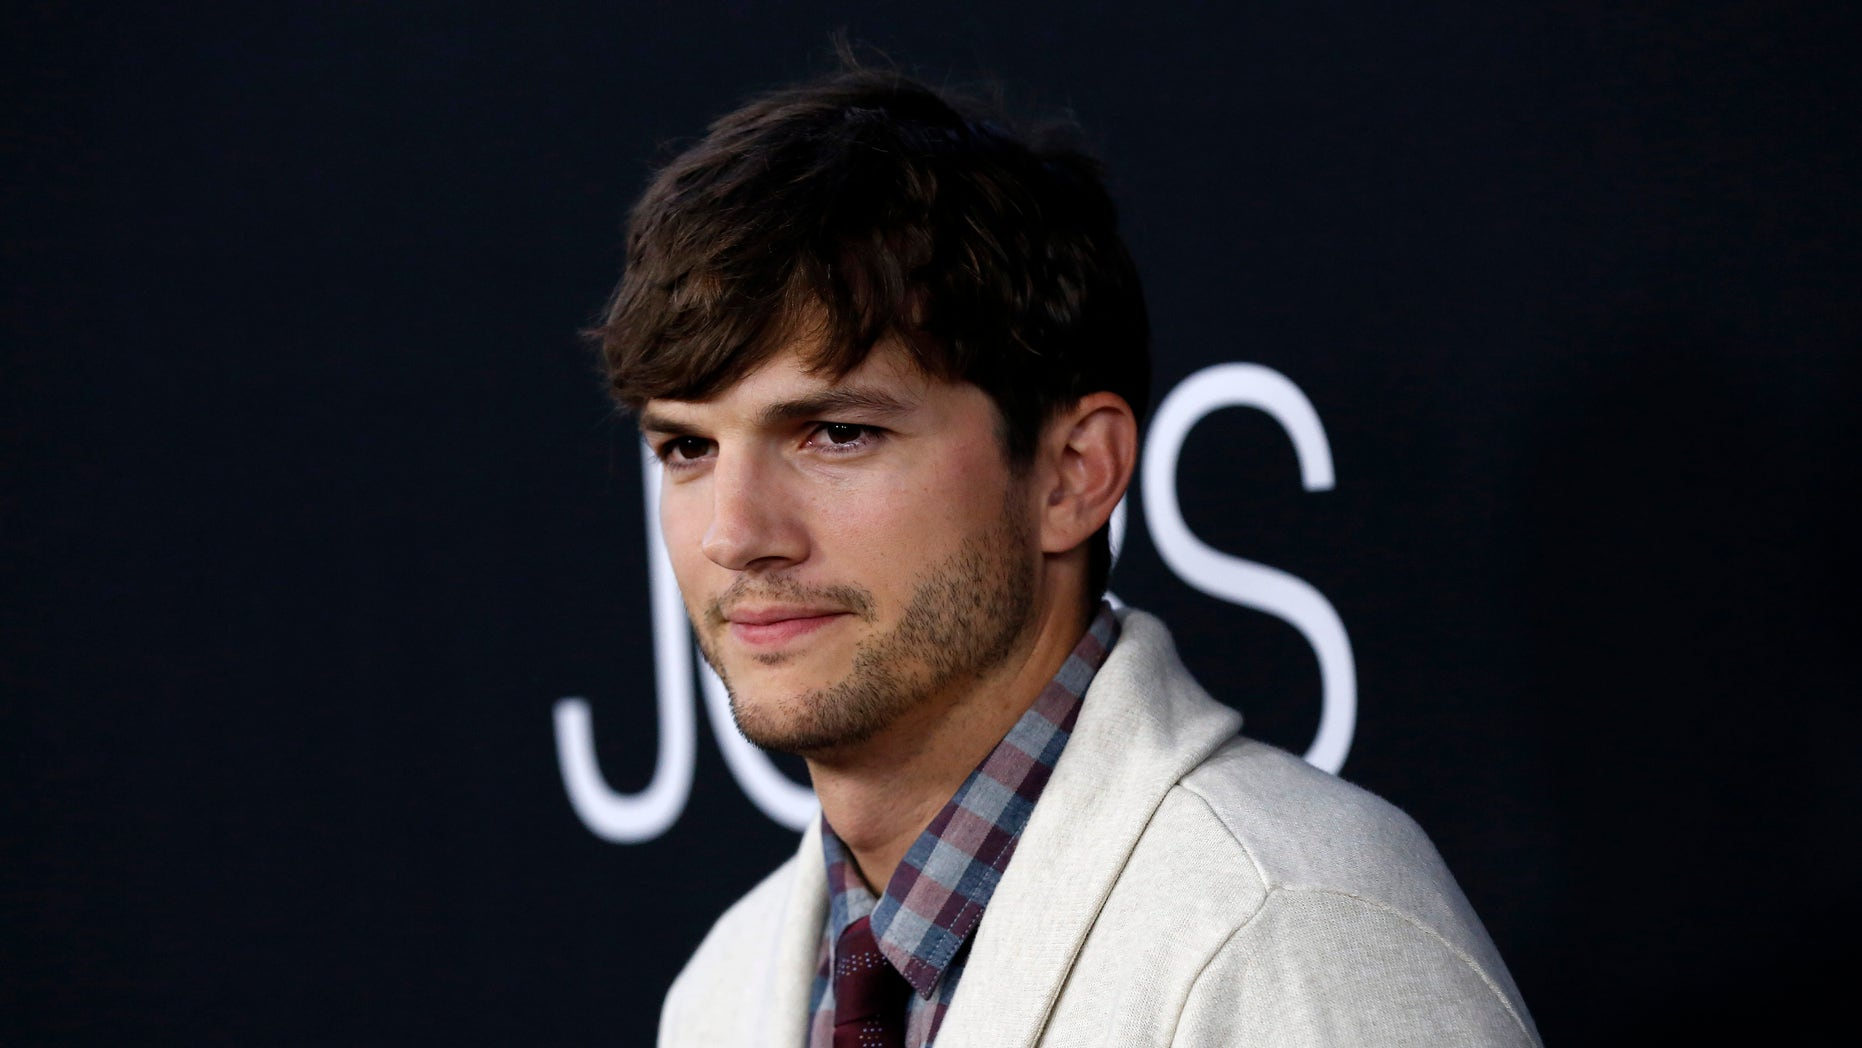 Ashton Kutcher had party at bar where Thousand Oaks shooting happened